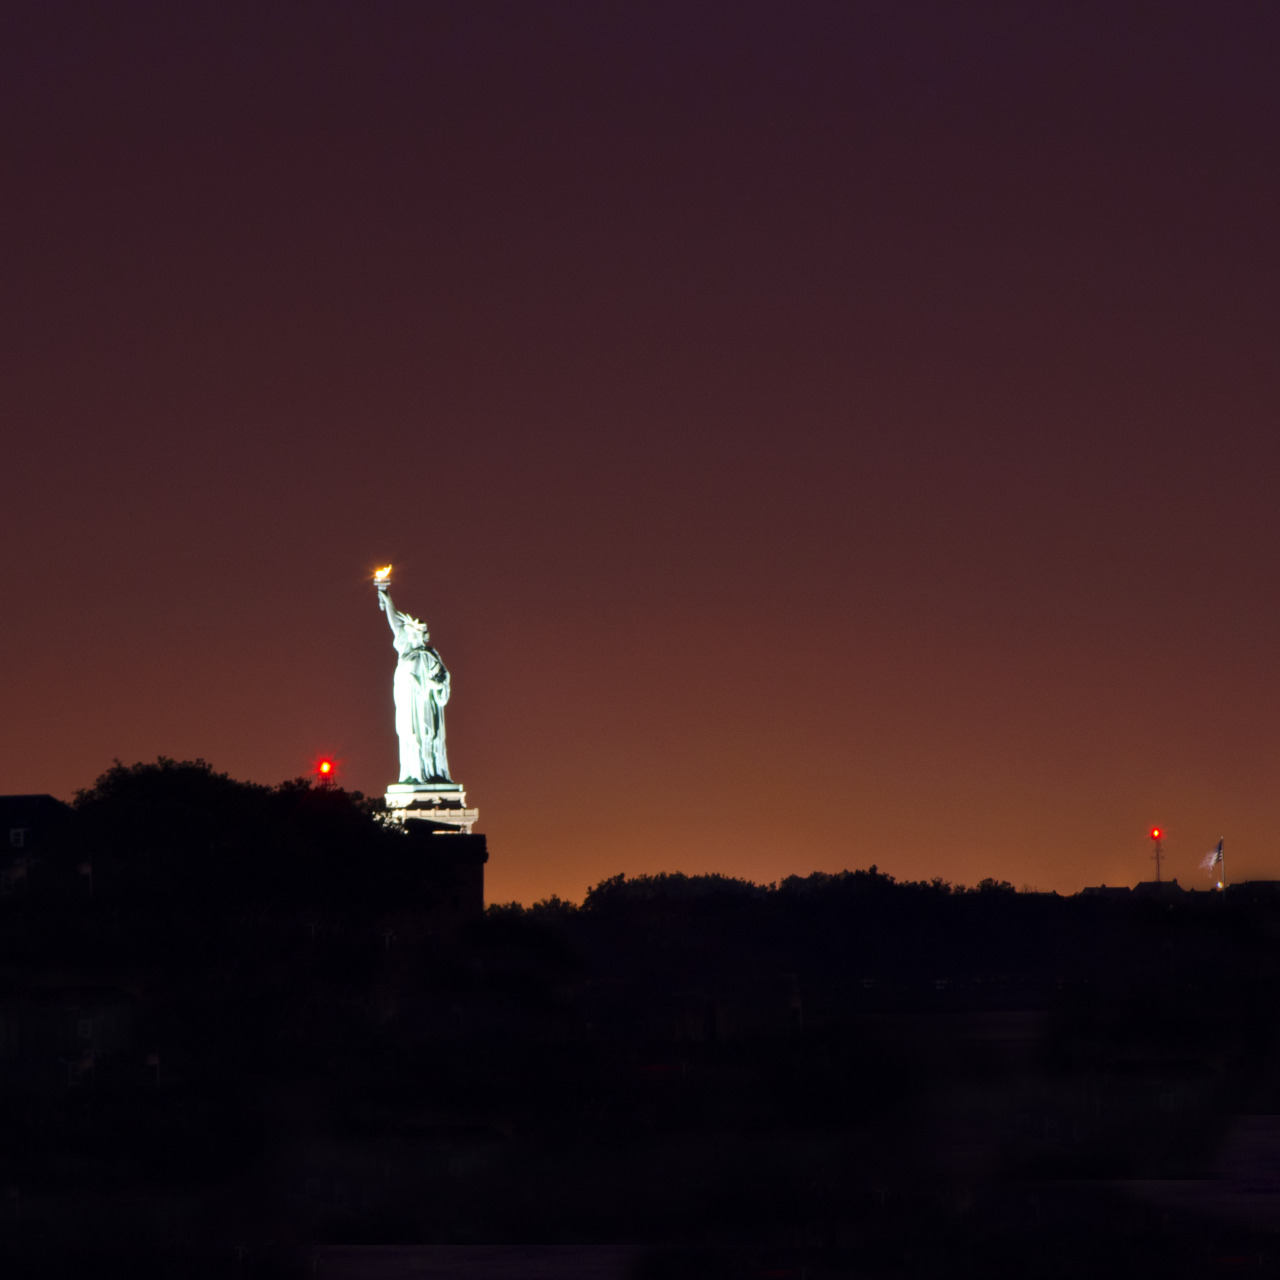 Statue of Liberty at night from a pier in Brooklyn Bridge Park